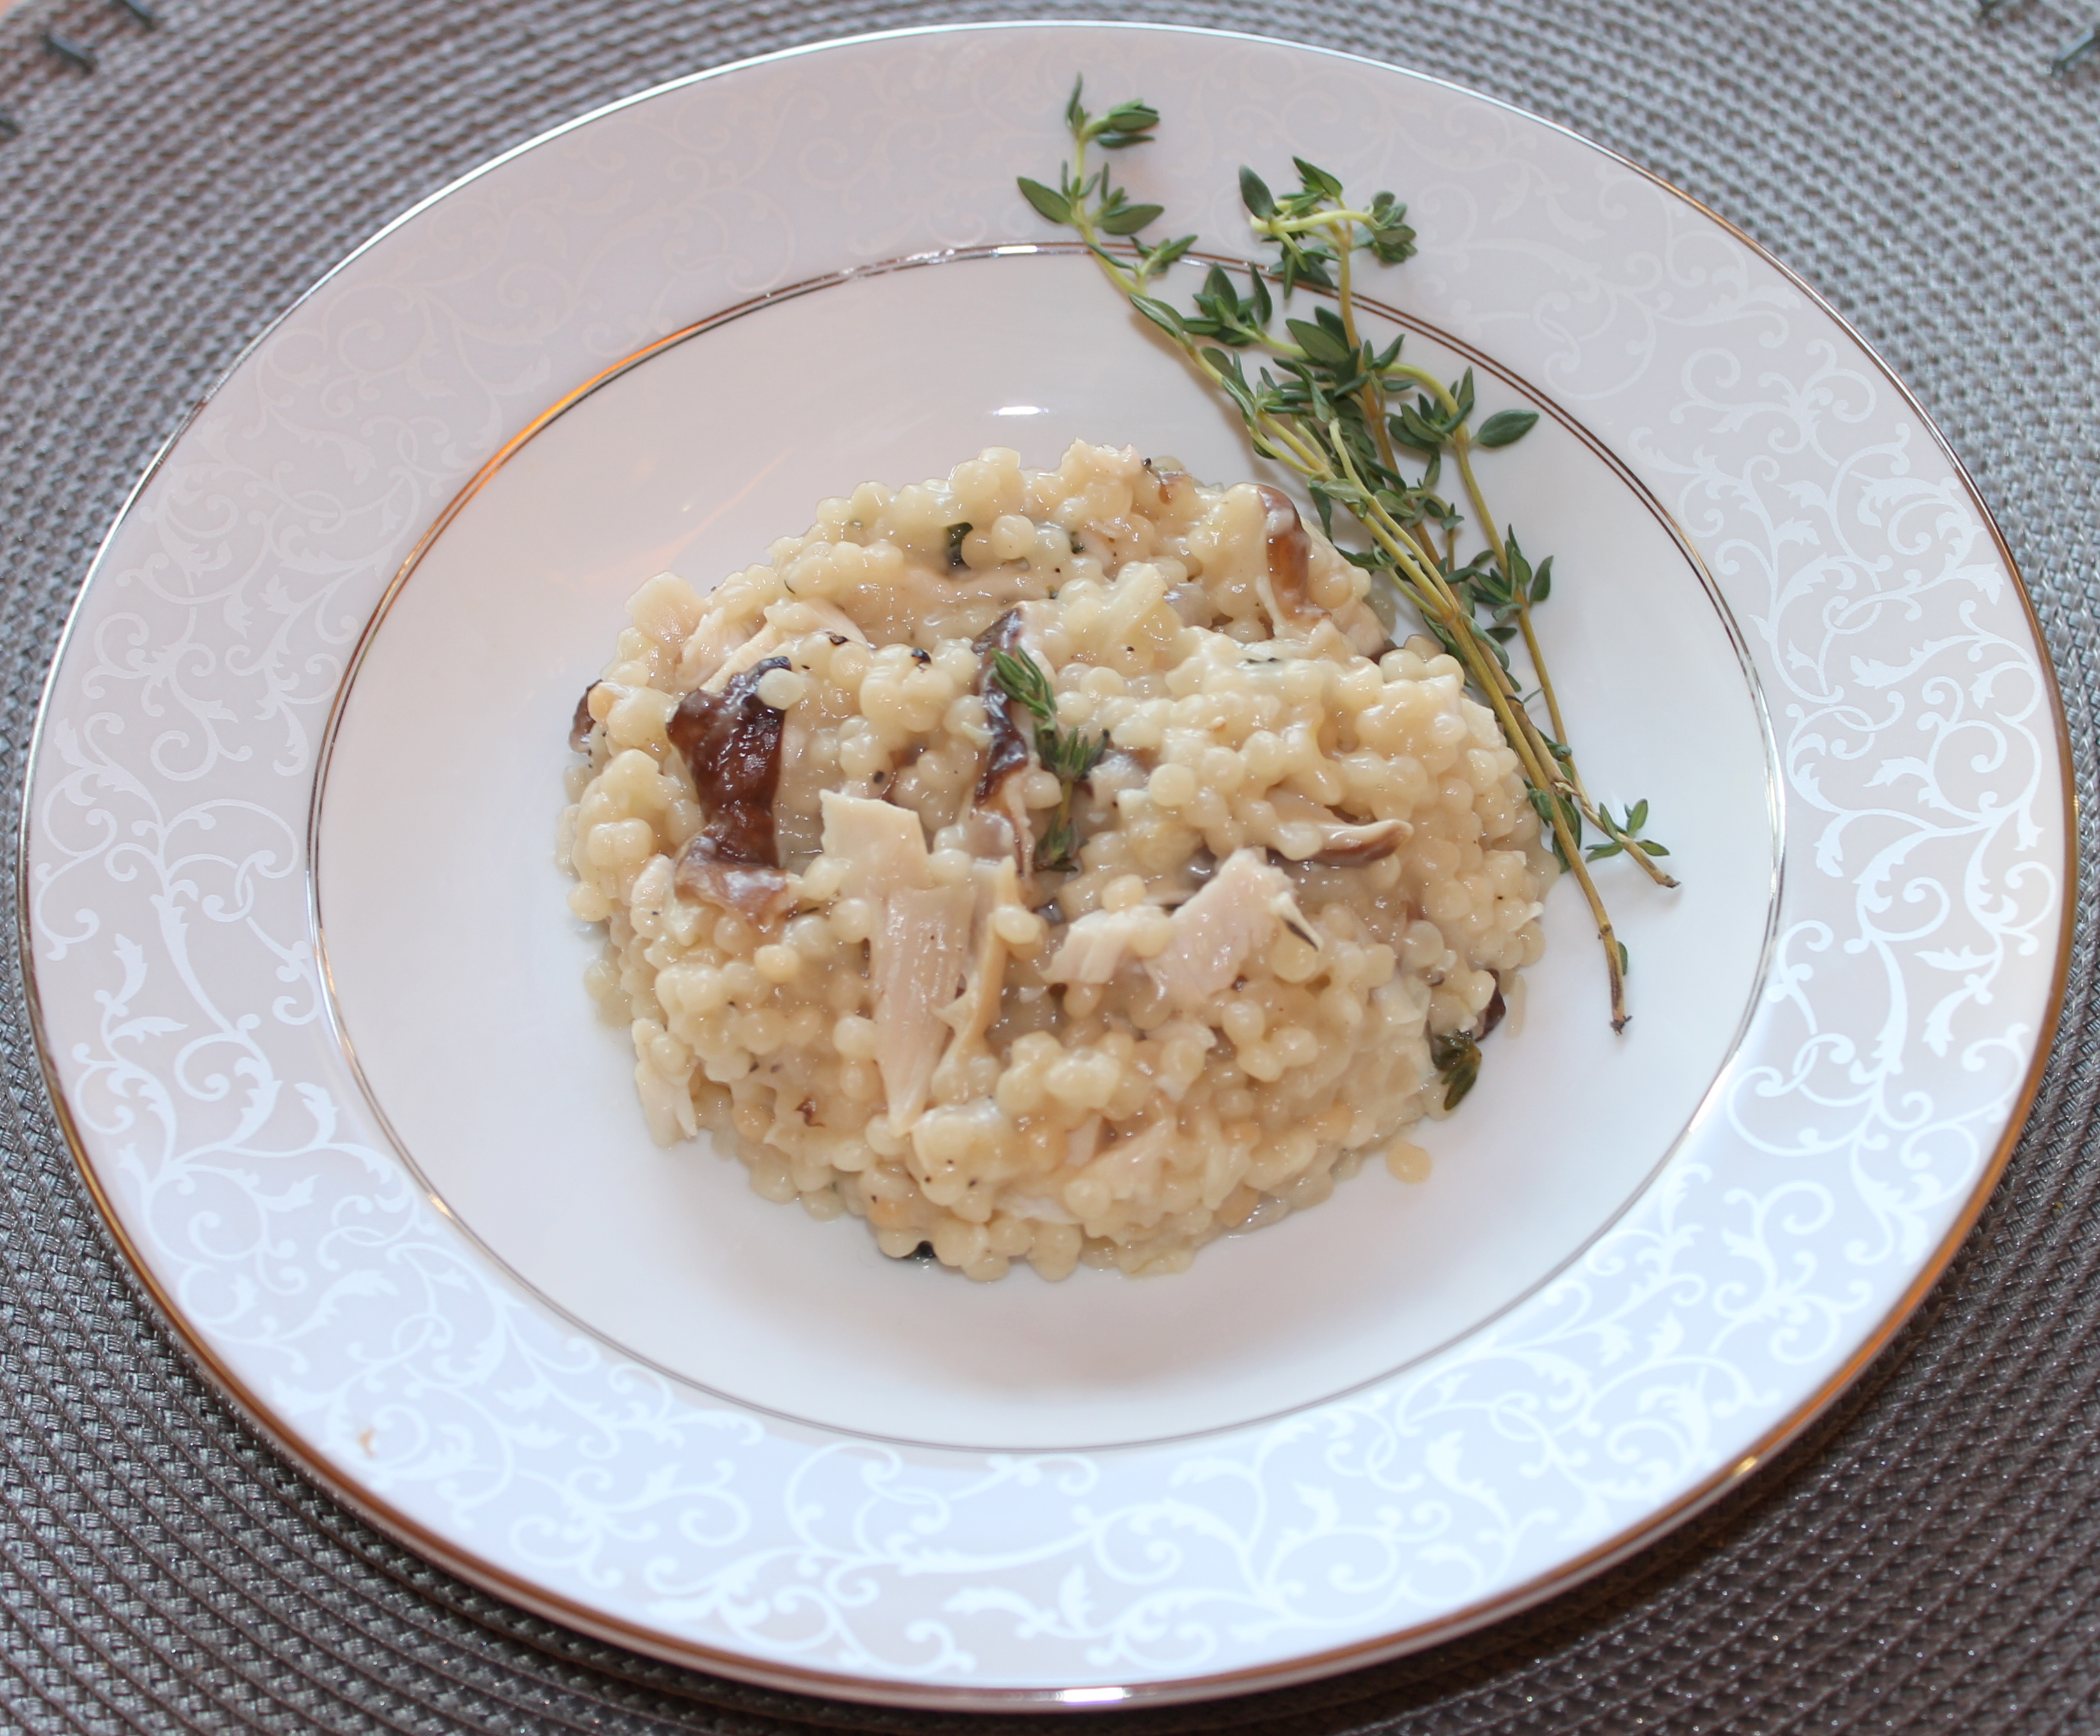 ... Leftover Recipe: Turkey and Mushroom Israeli Couscous Risotto